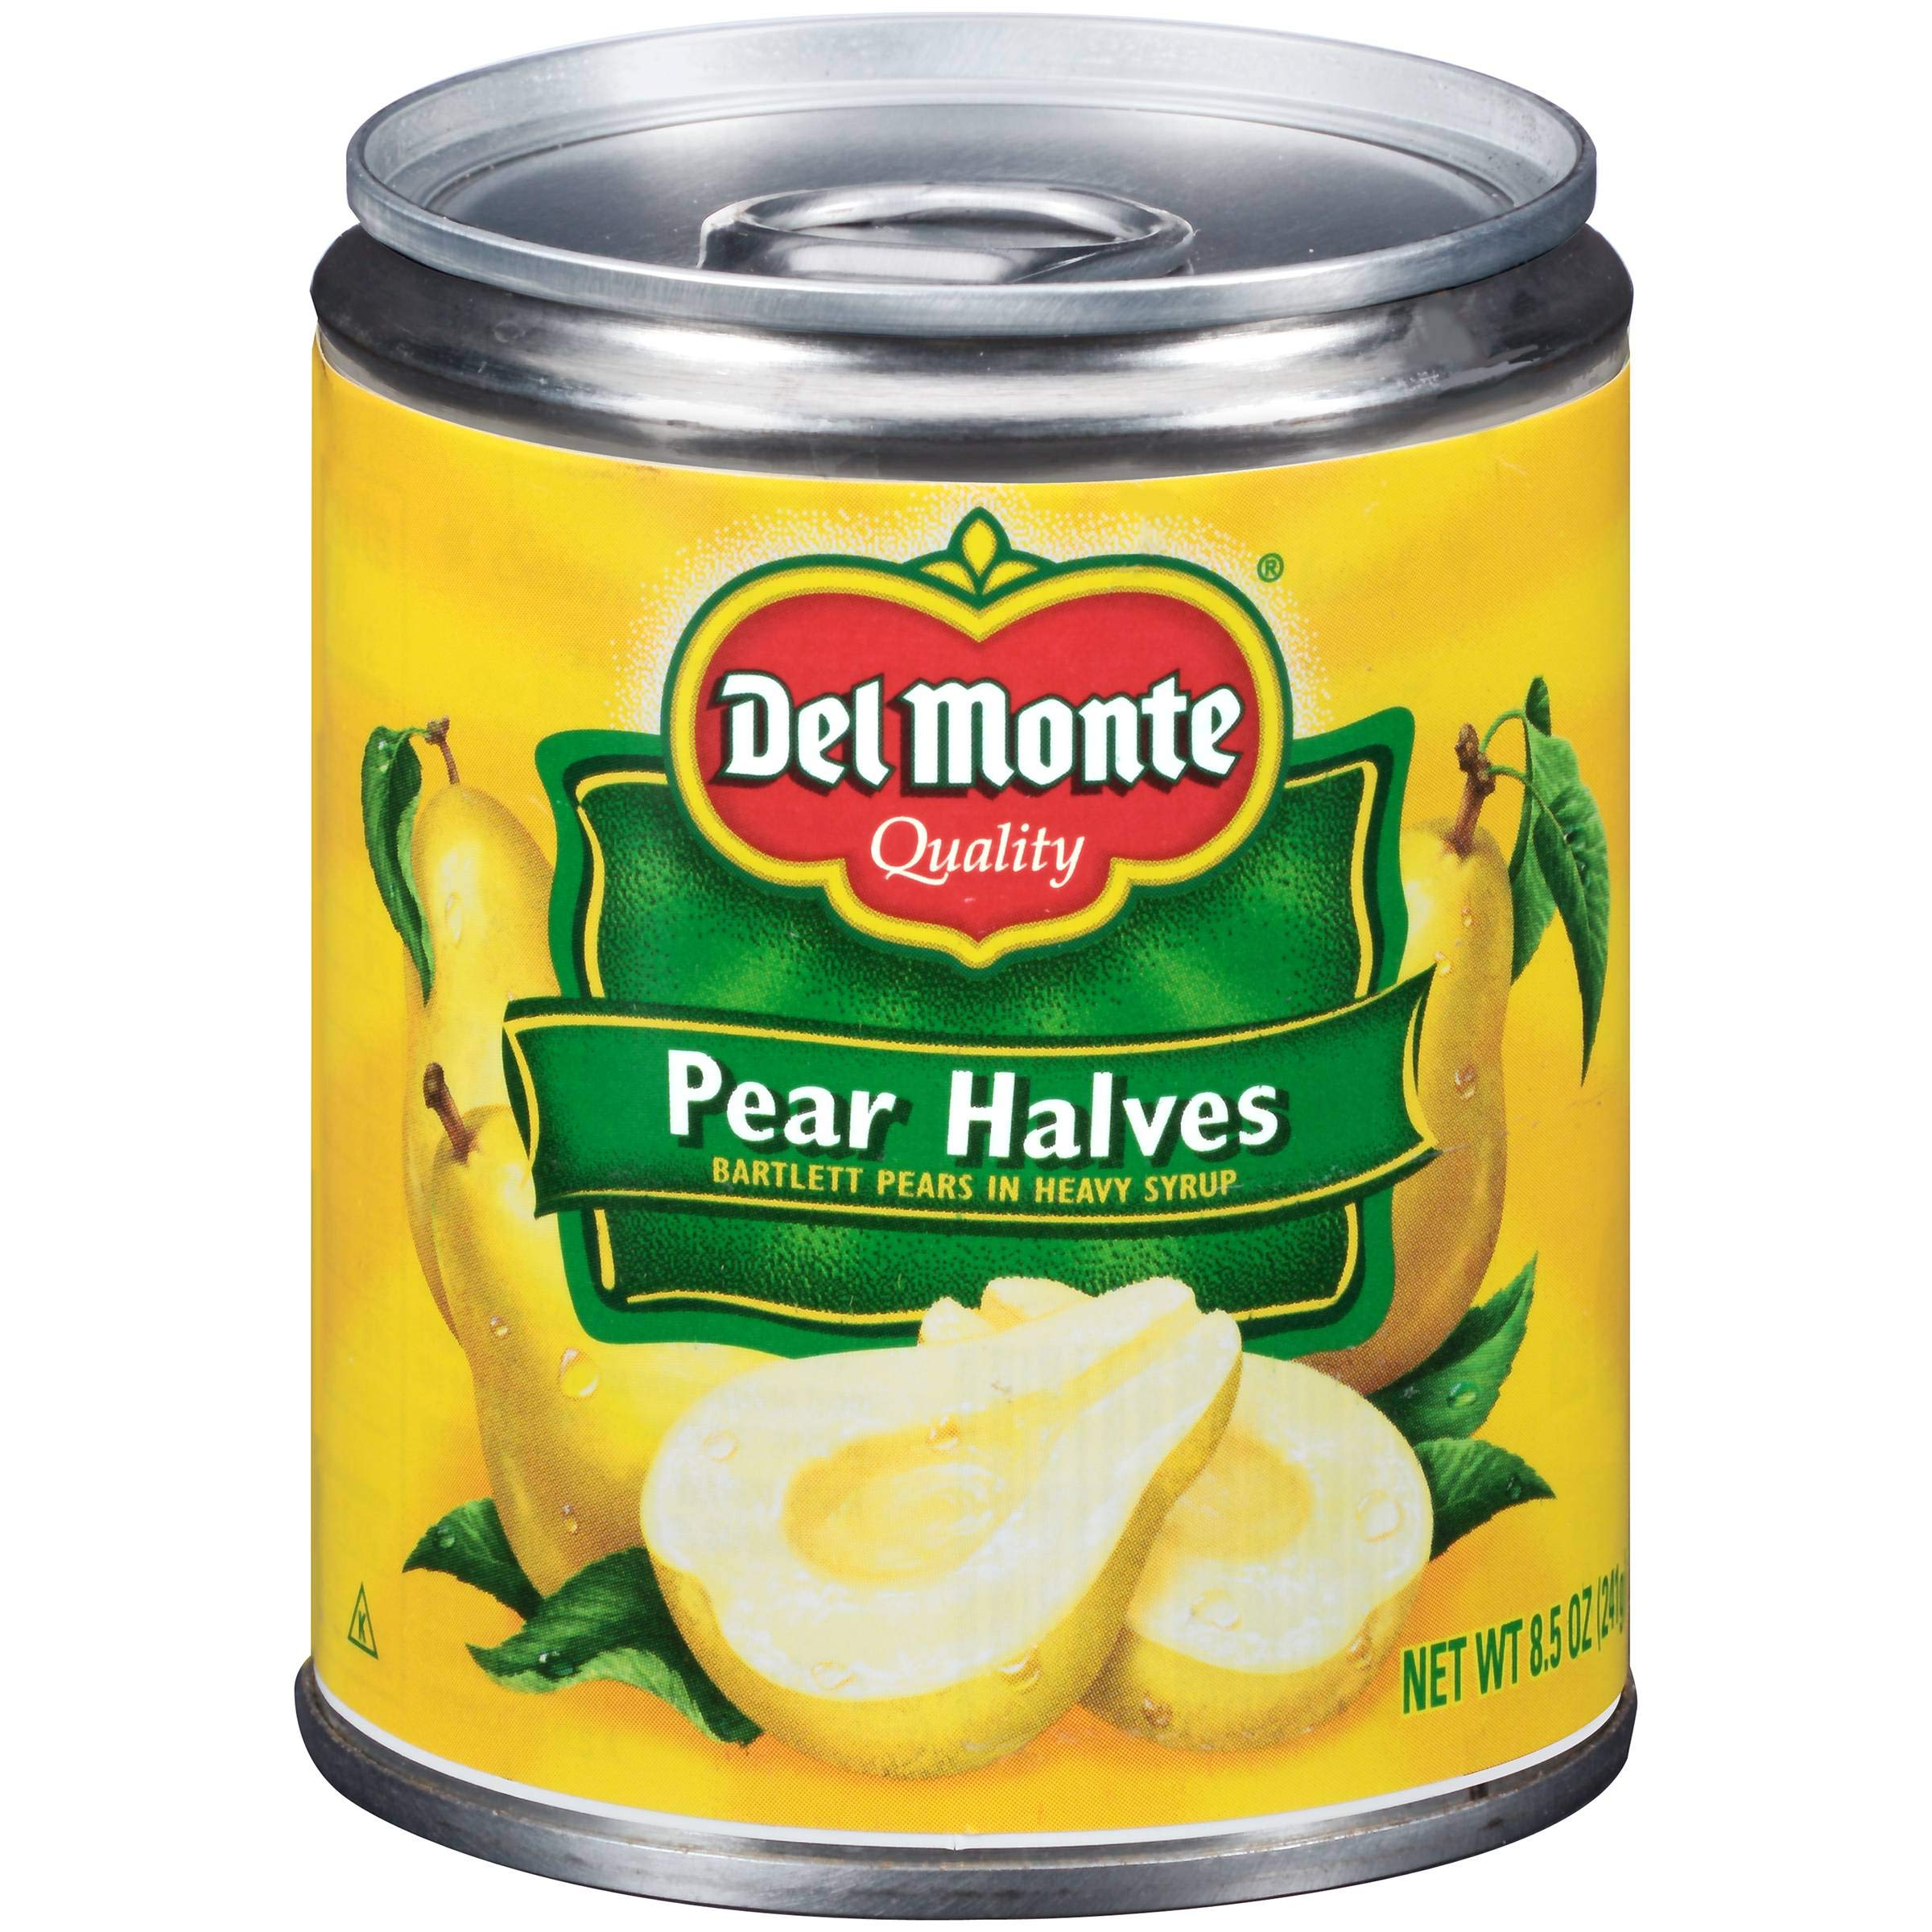 Del Monte Pear Halves, 8.5-Ounce Packages (Pack of 12) by Del Monte